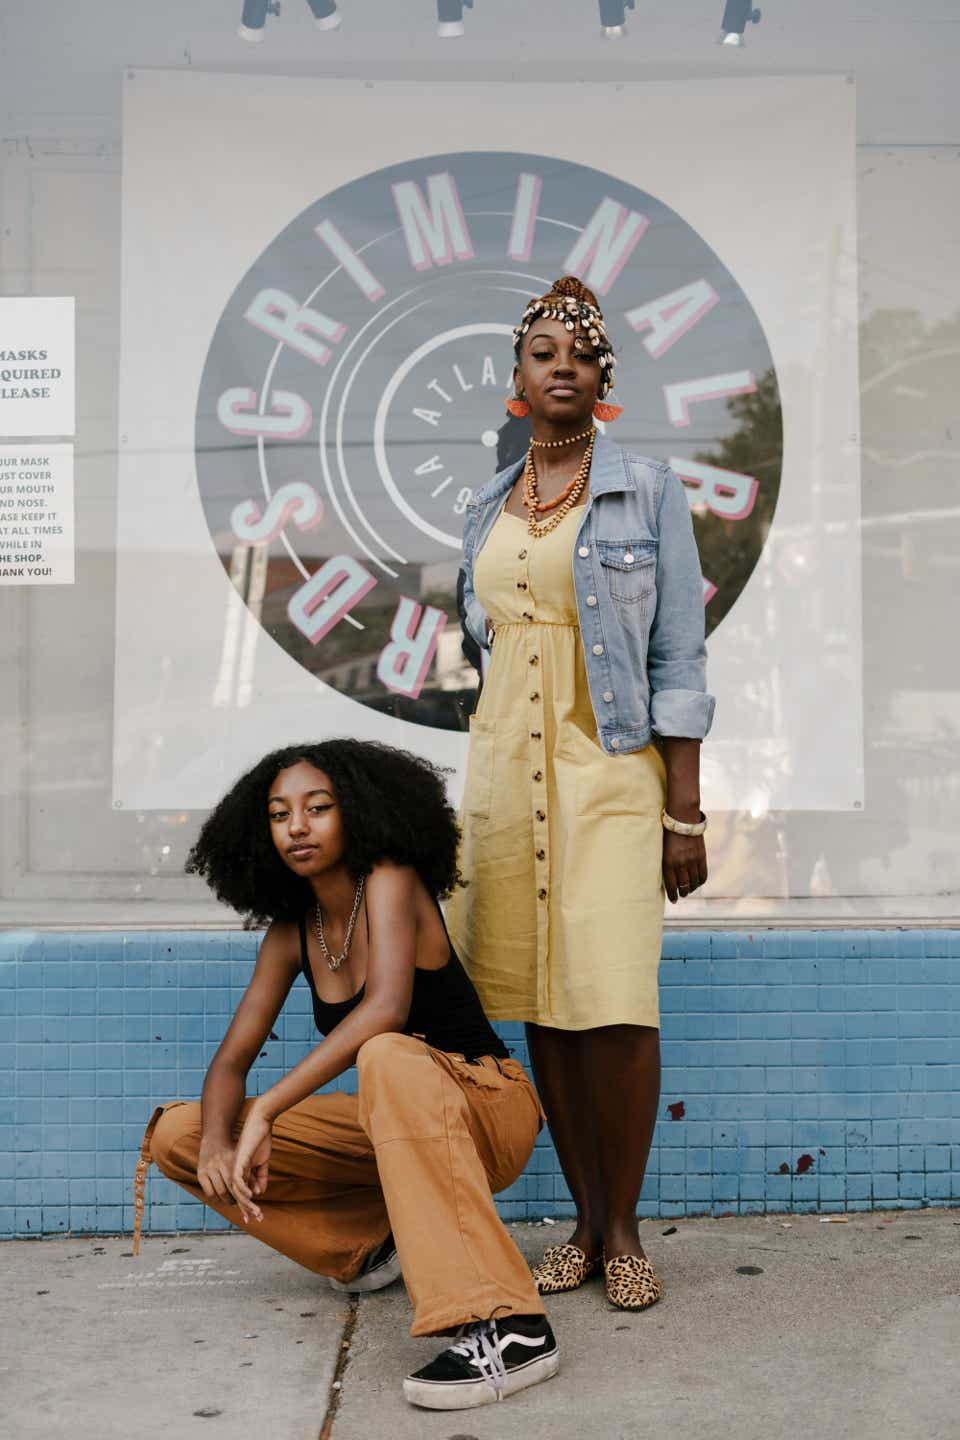 Justyce and Ashley are posing together outside of a local record shop. Justyce is crouching down while wearing a black tank top, orange cargo pants, and Vans sneakers. Ashley is wearing red earrings, a denim jacket, a yellow button-down sundress, and leopard print loafers.